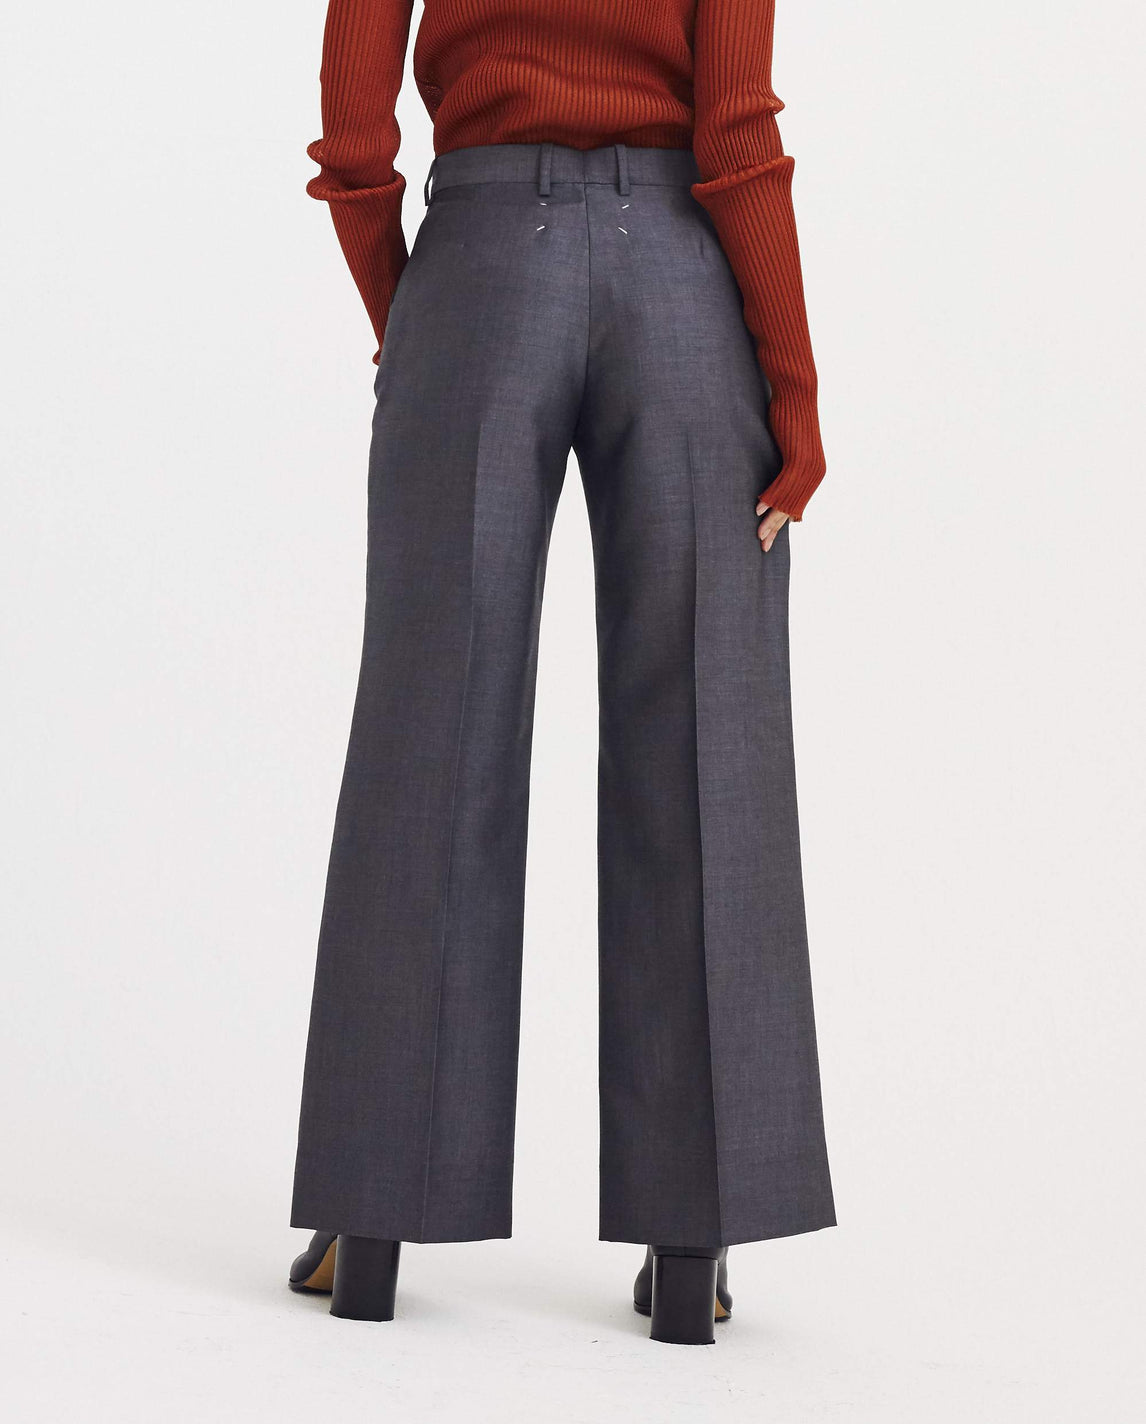 Flared Pants - Grey WOMENS MAISON MARGIELA